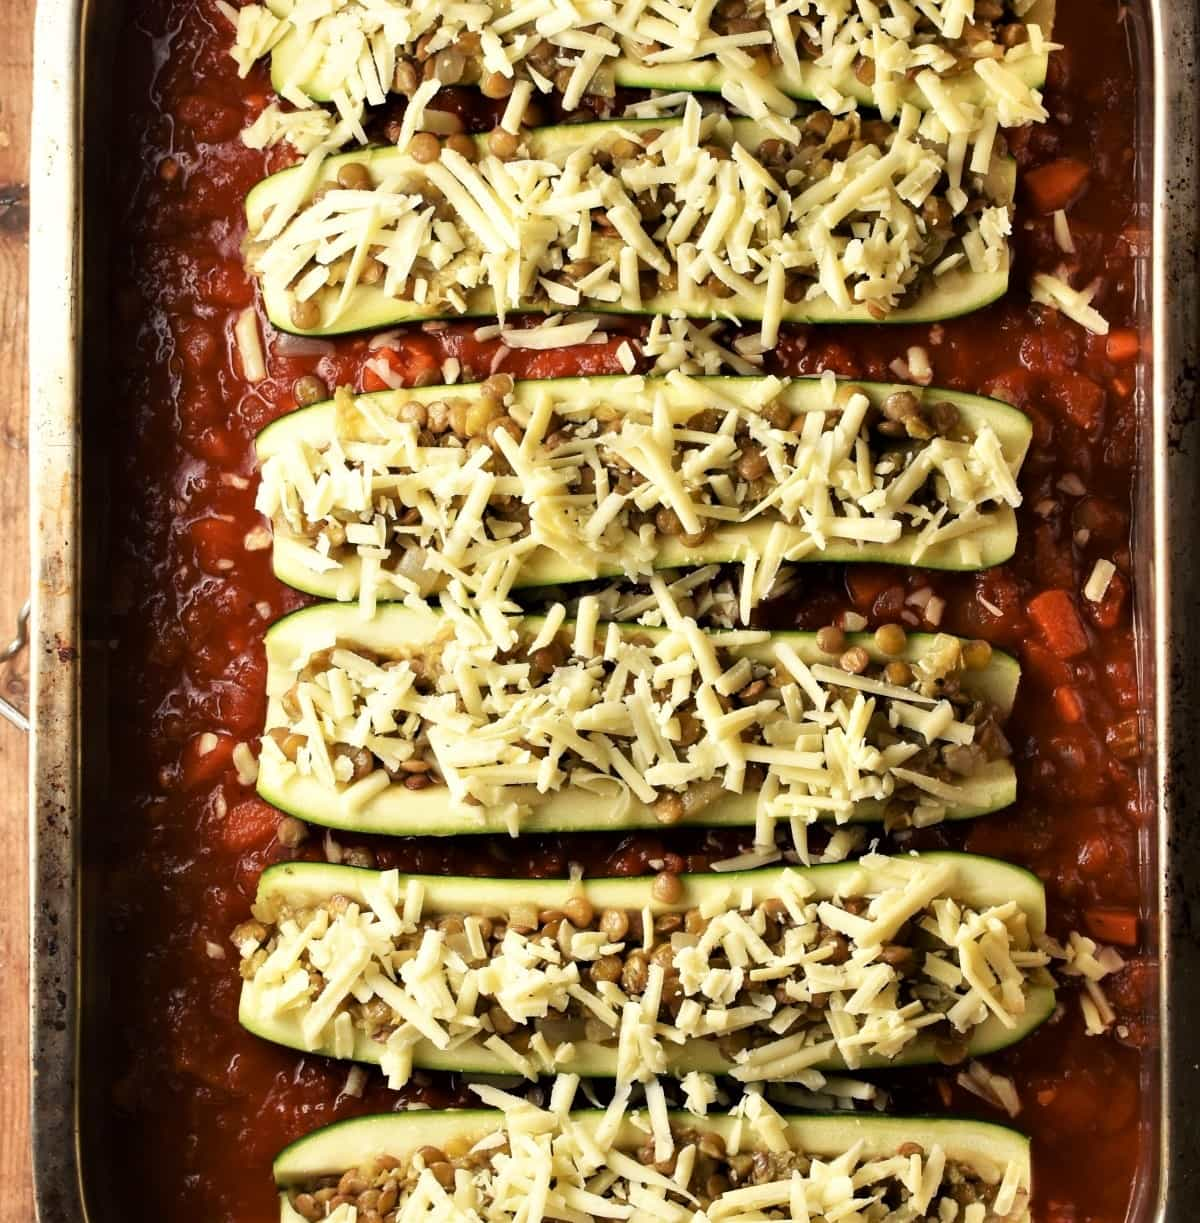 Unbaked stuffed zucchini in tomato sauce.